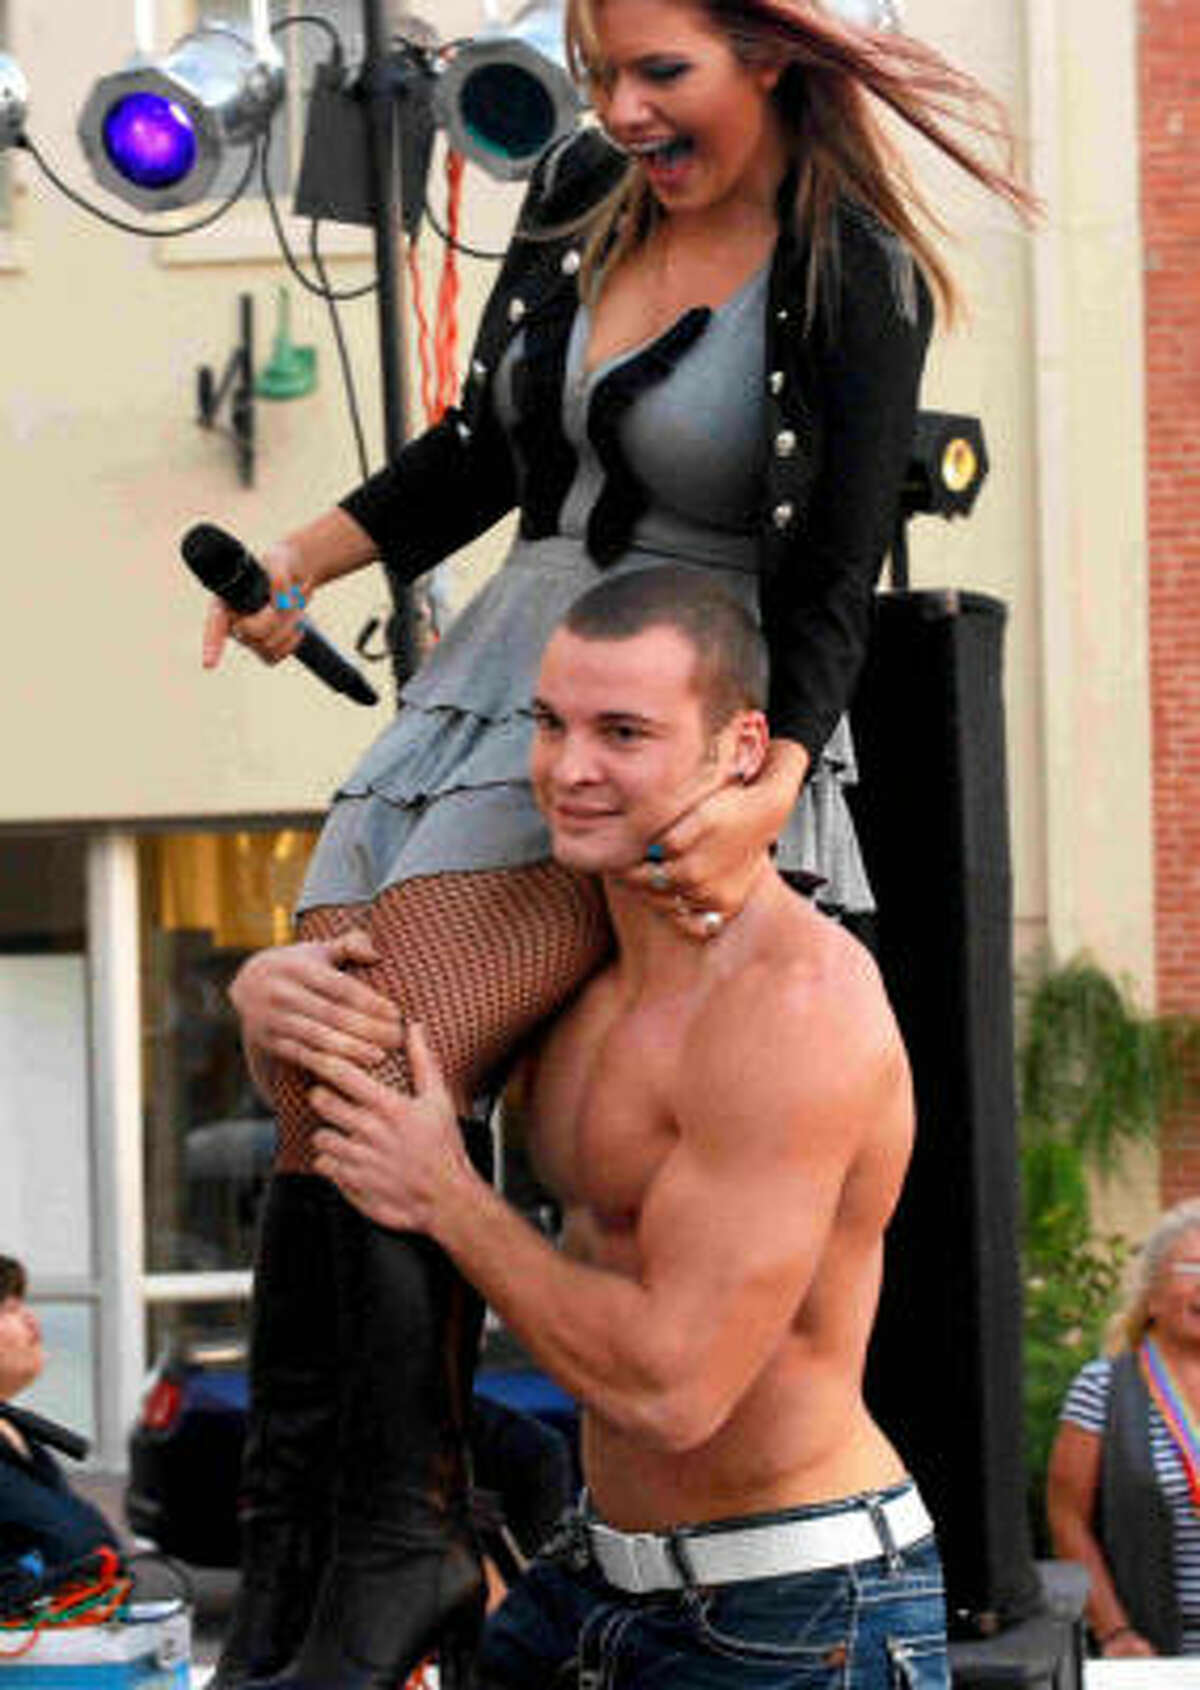 Kady Malloy, from Katy, former American Idol 7 semifinalist. The guy lifting her Justin Piper (her boyfriend).